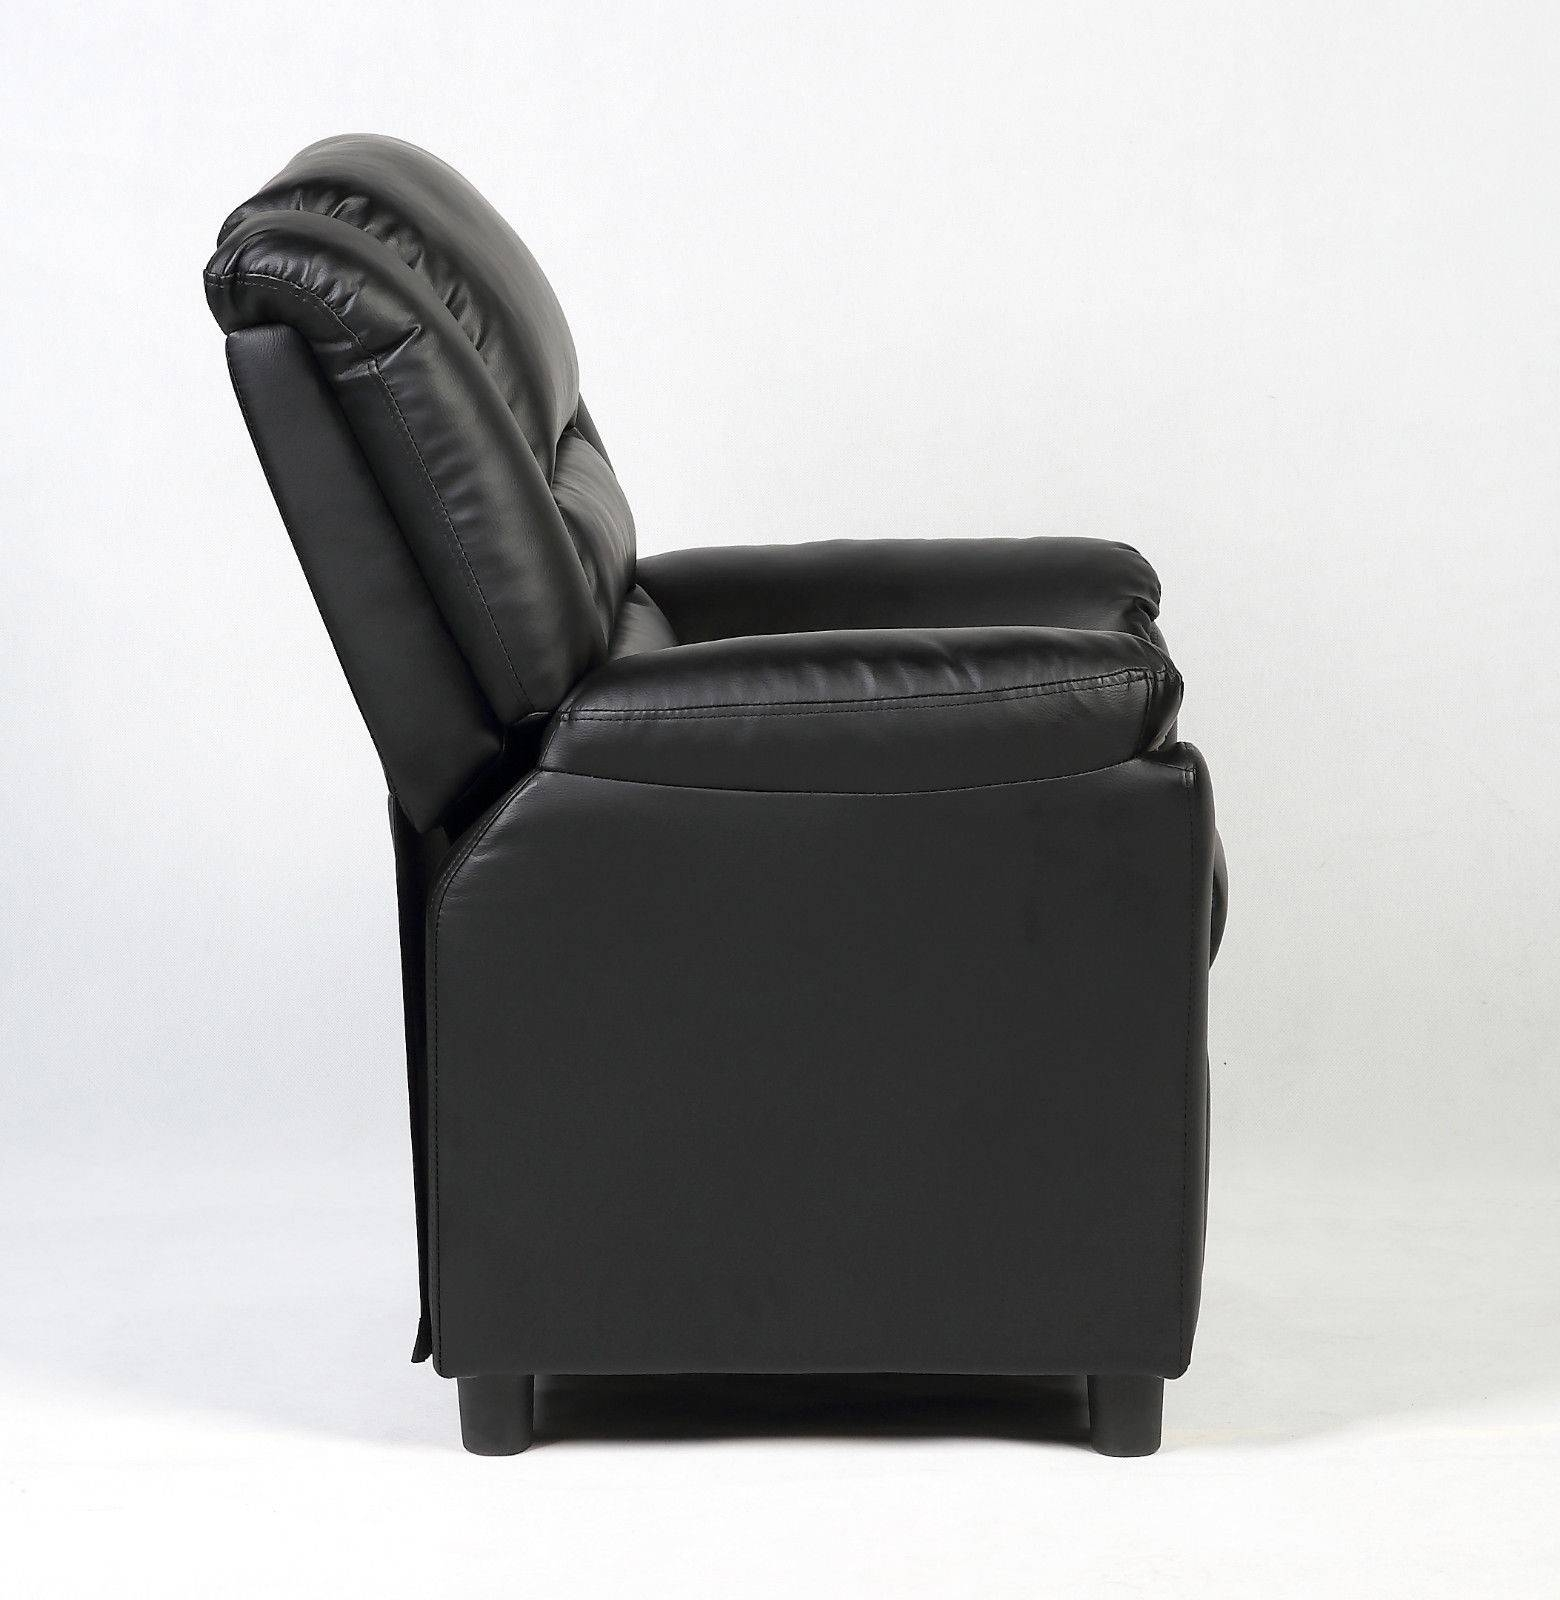 Ergonomic Kids Sofa Manual Recliner - Arm Chairs, Recliners pertaining to Ergonomic Sofas And Chairs (Image 12 of 30)